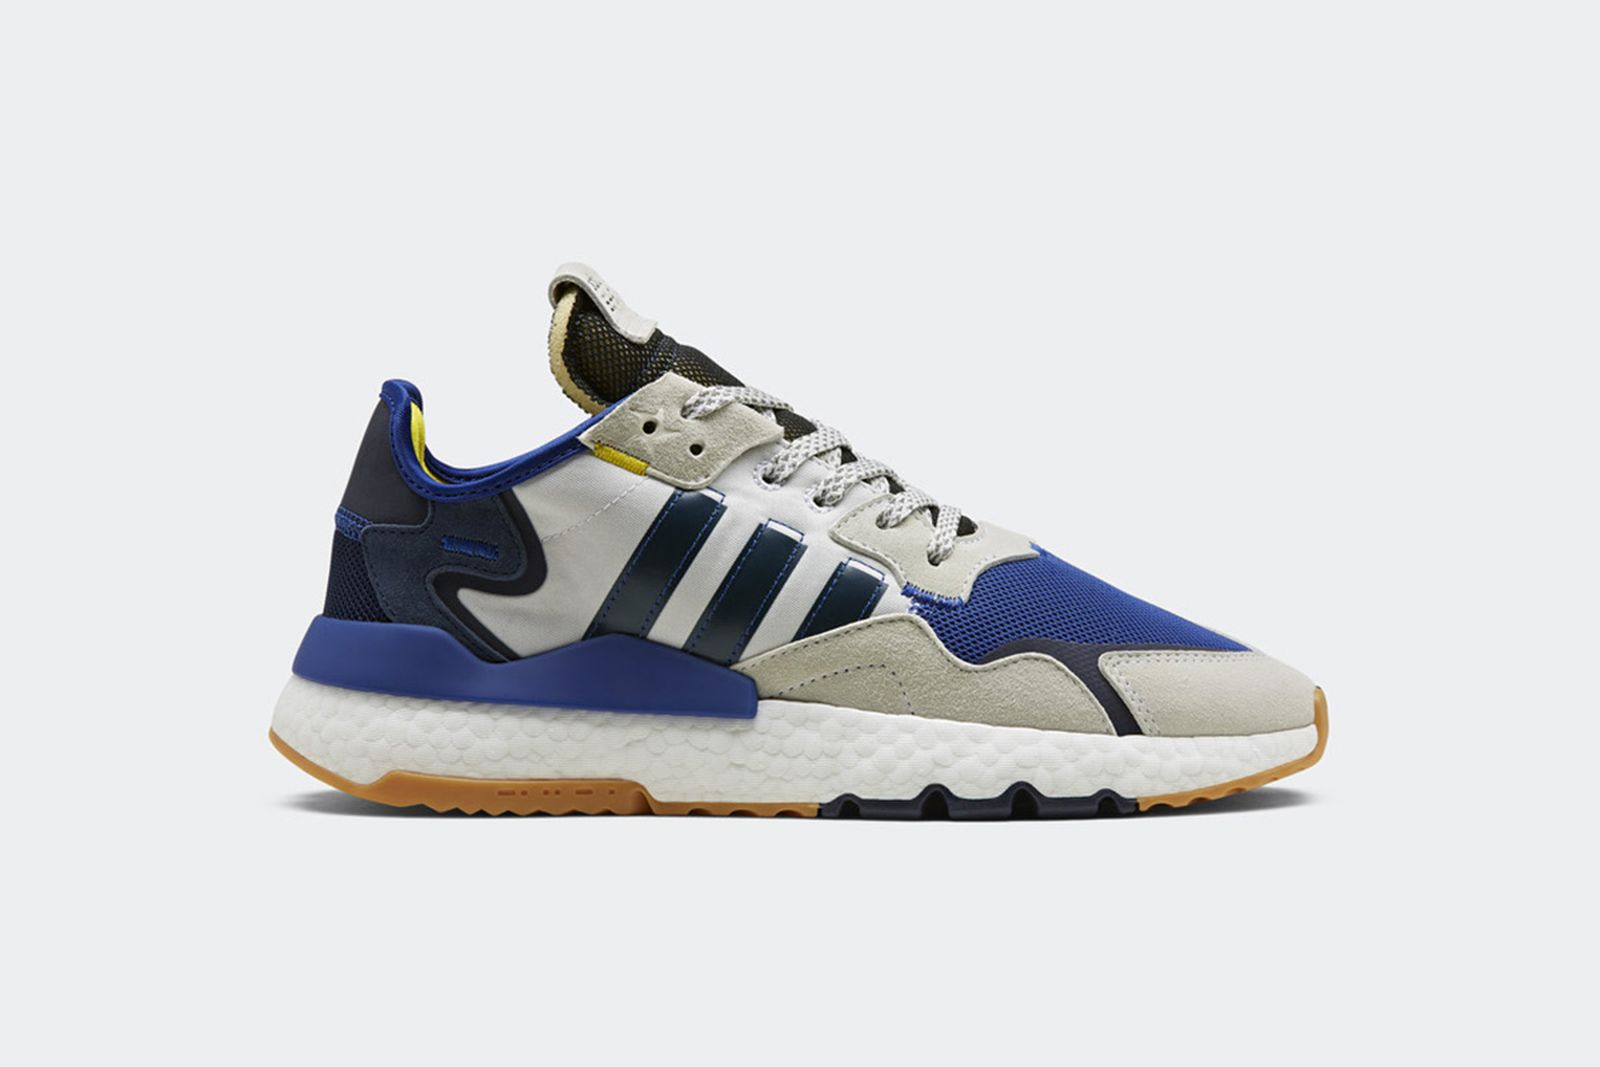 ninja-adidas-nite-jogger-time-in-release-date-price-07